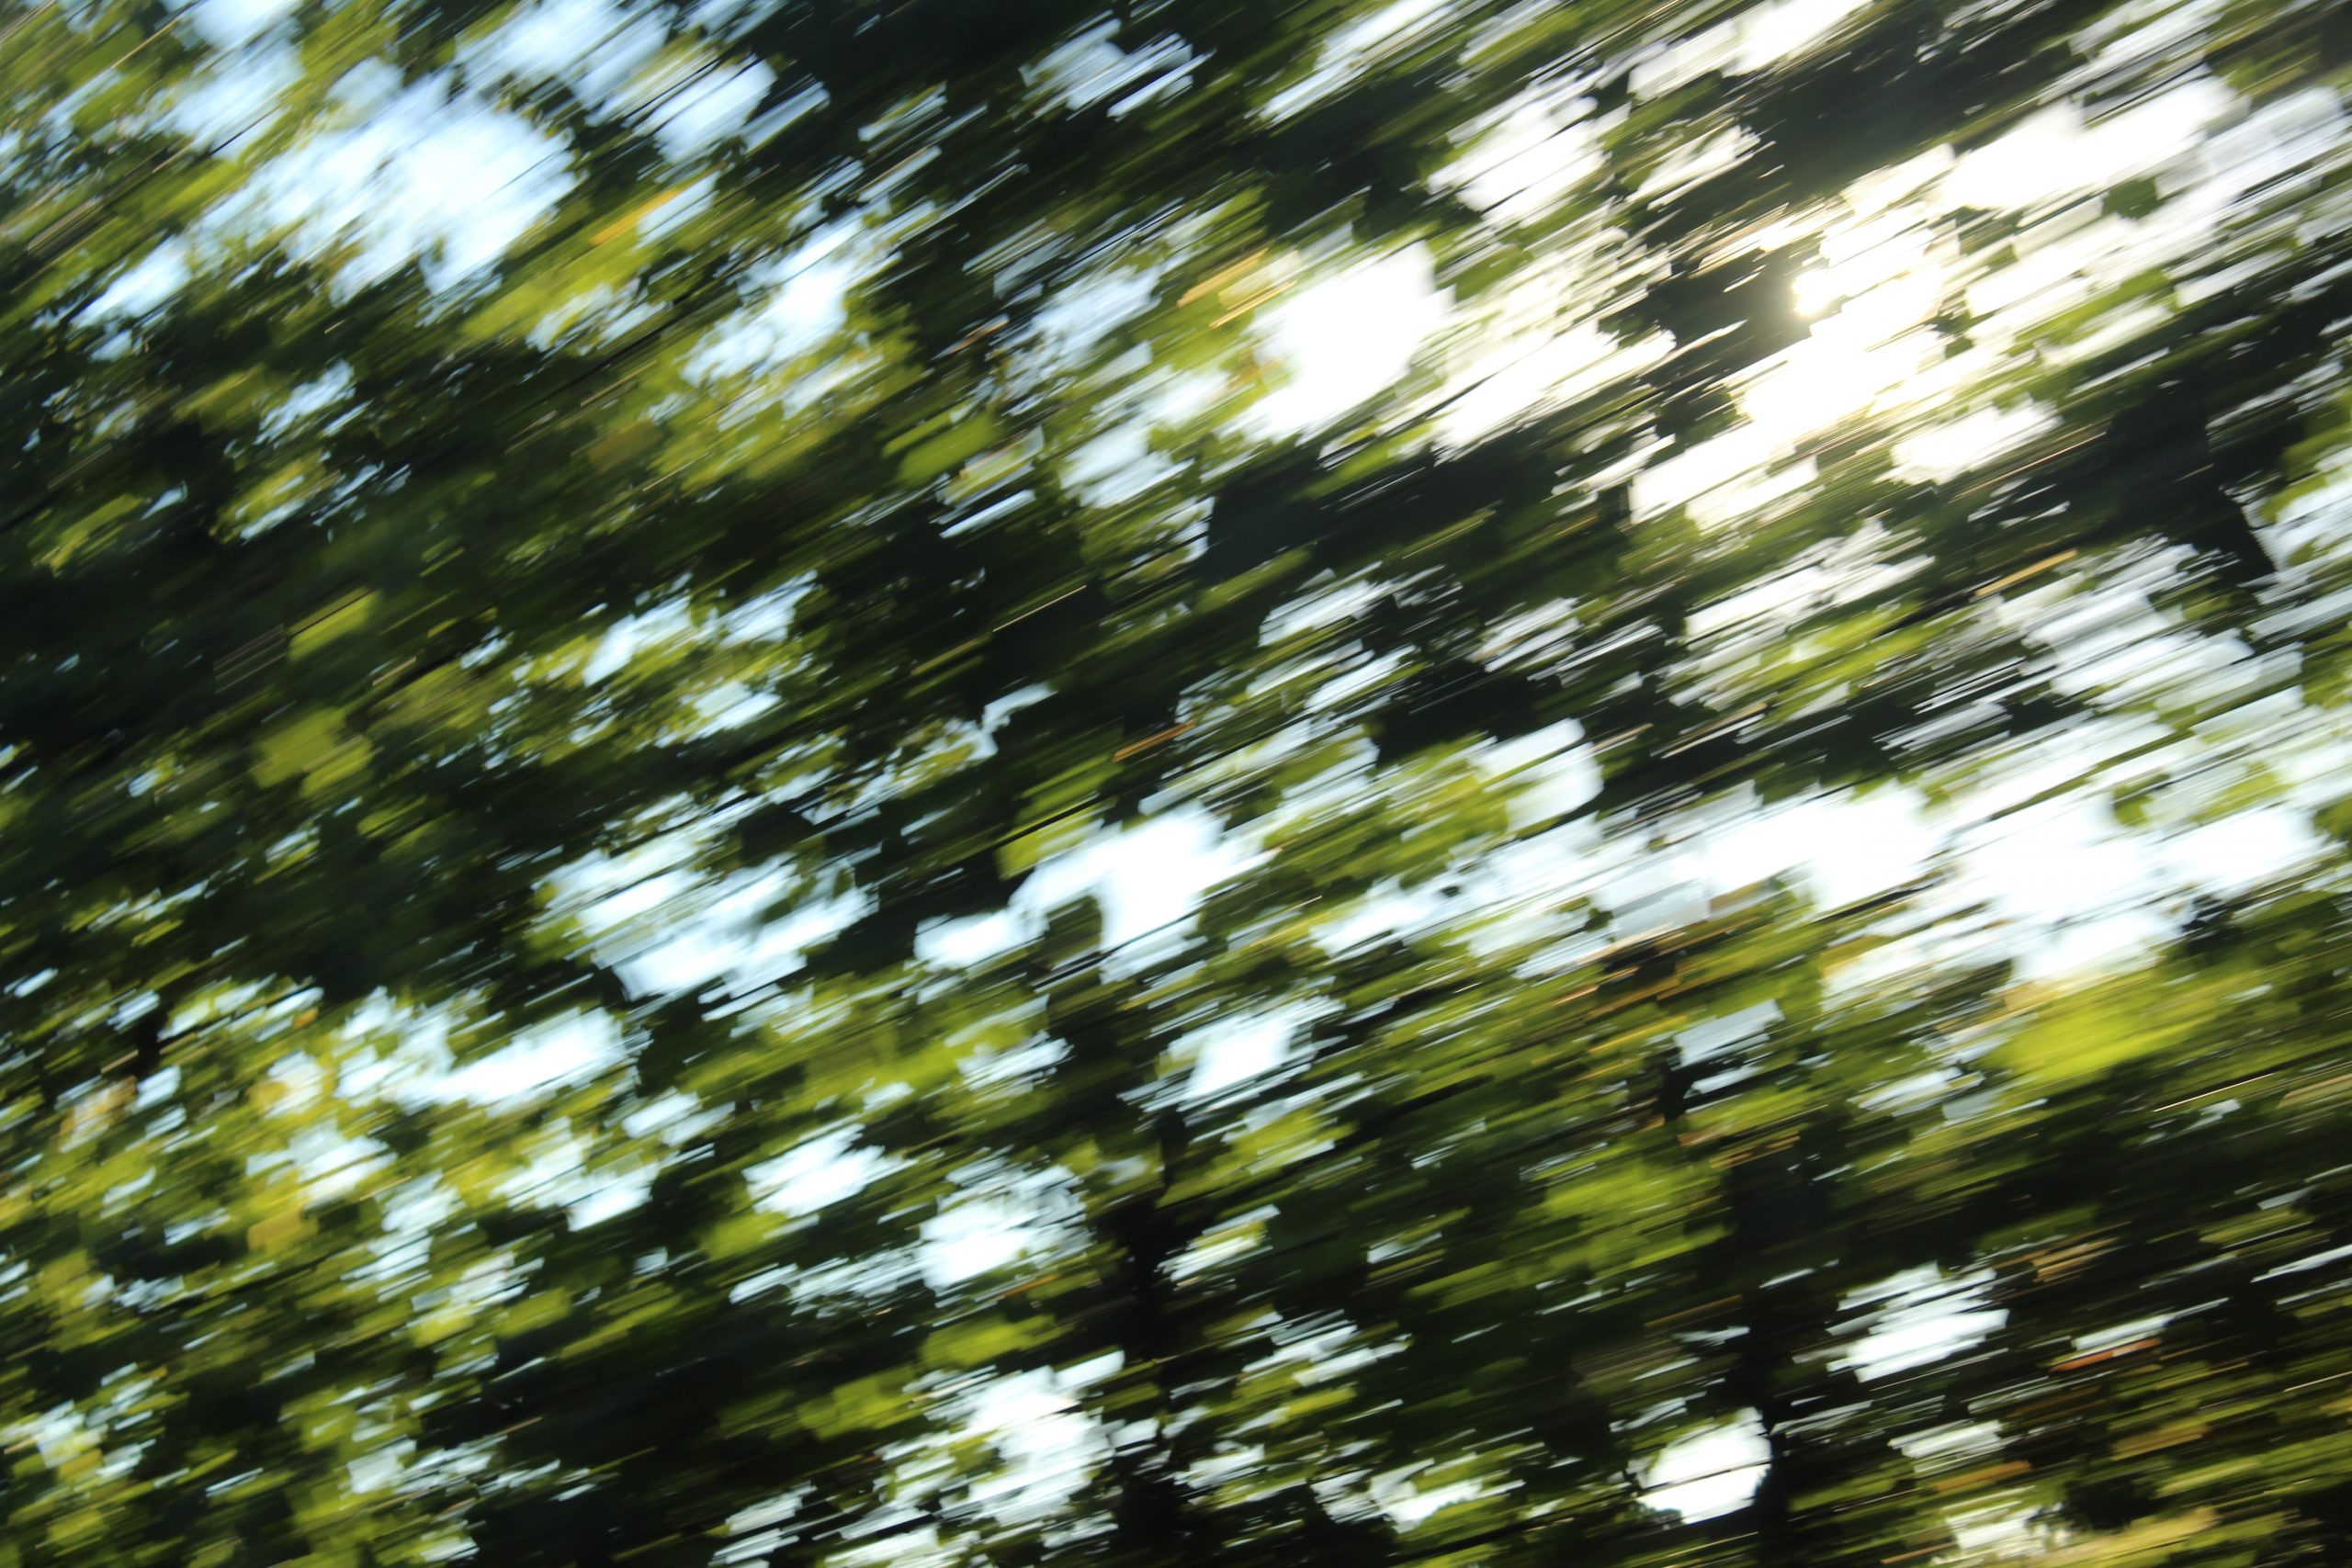 Speeding past leaves with the sun shining through